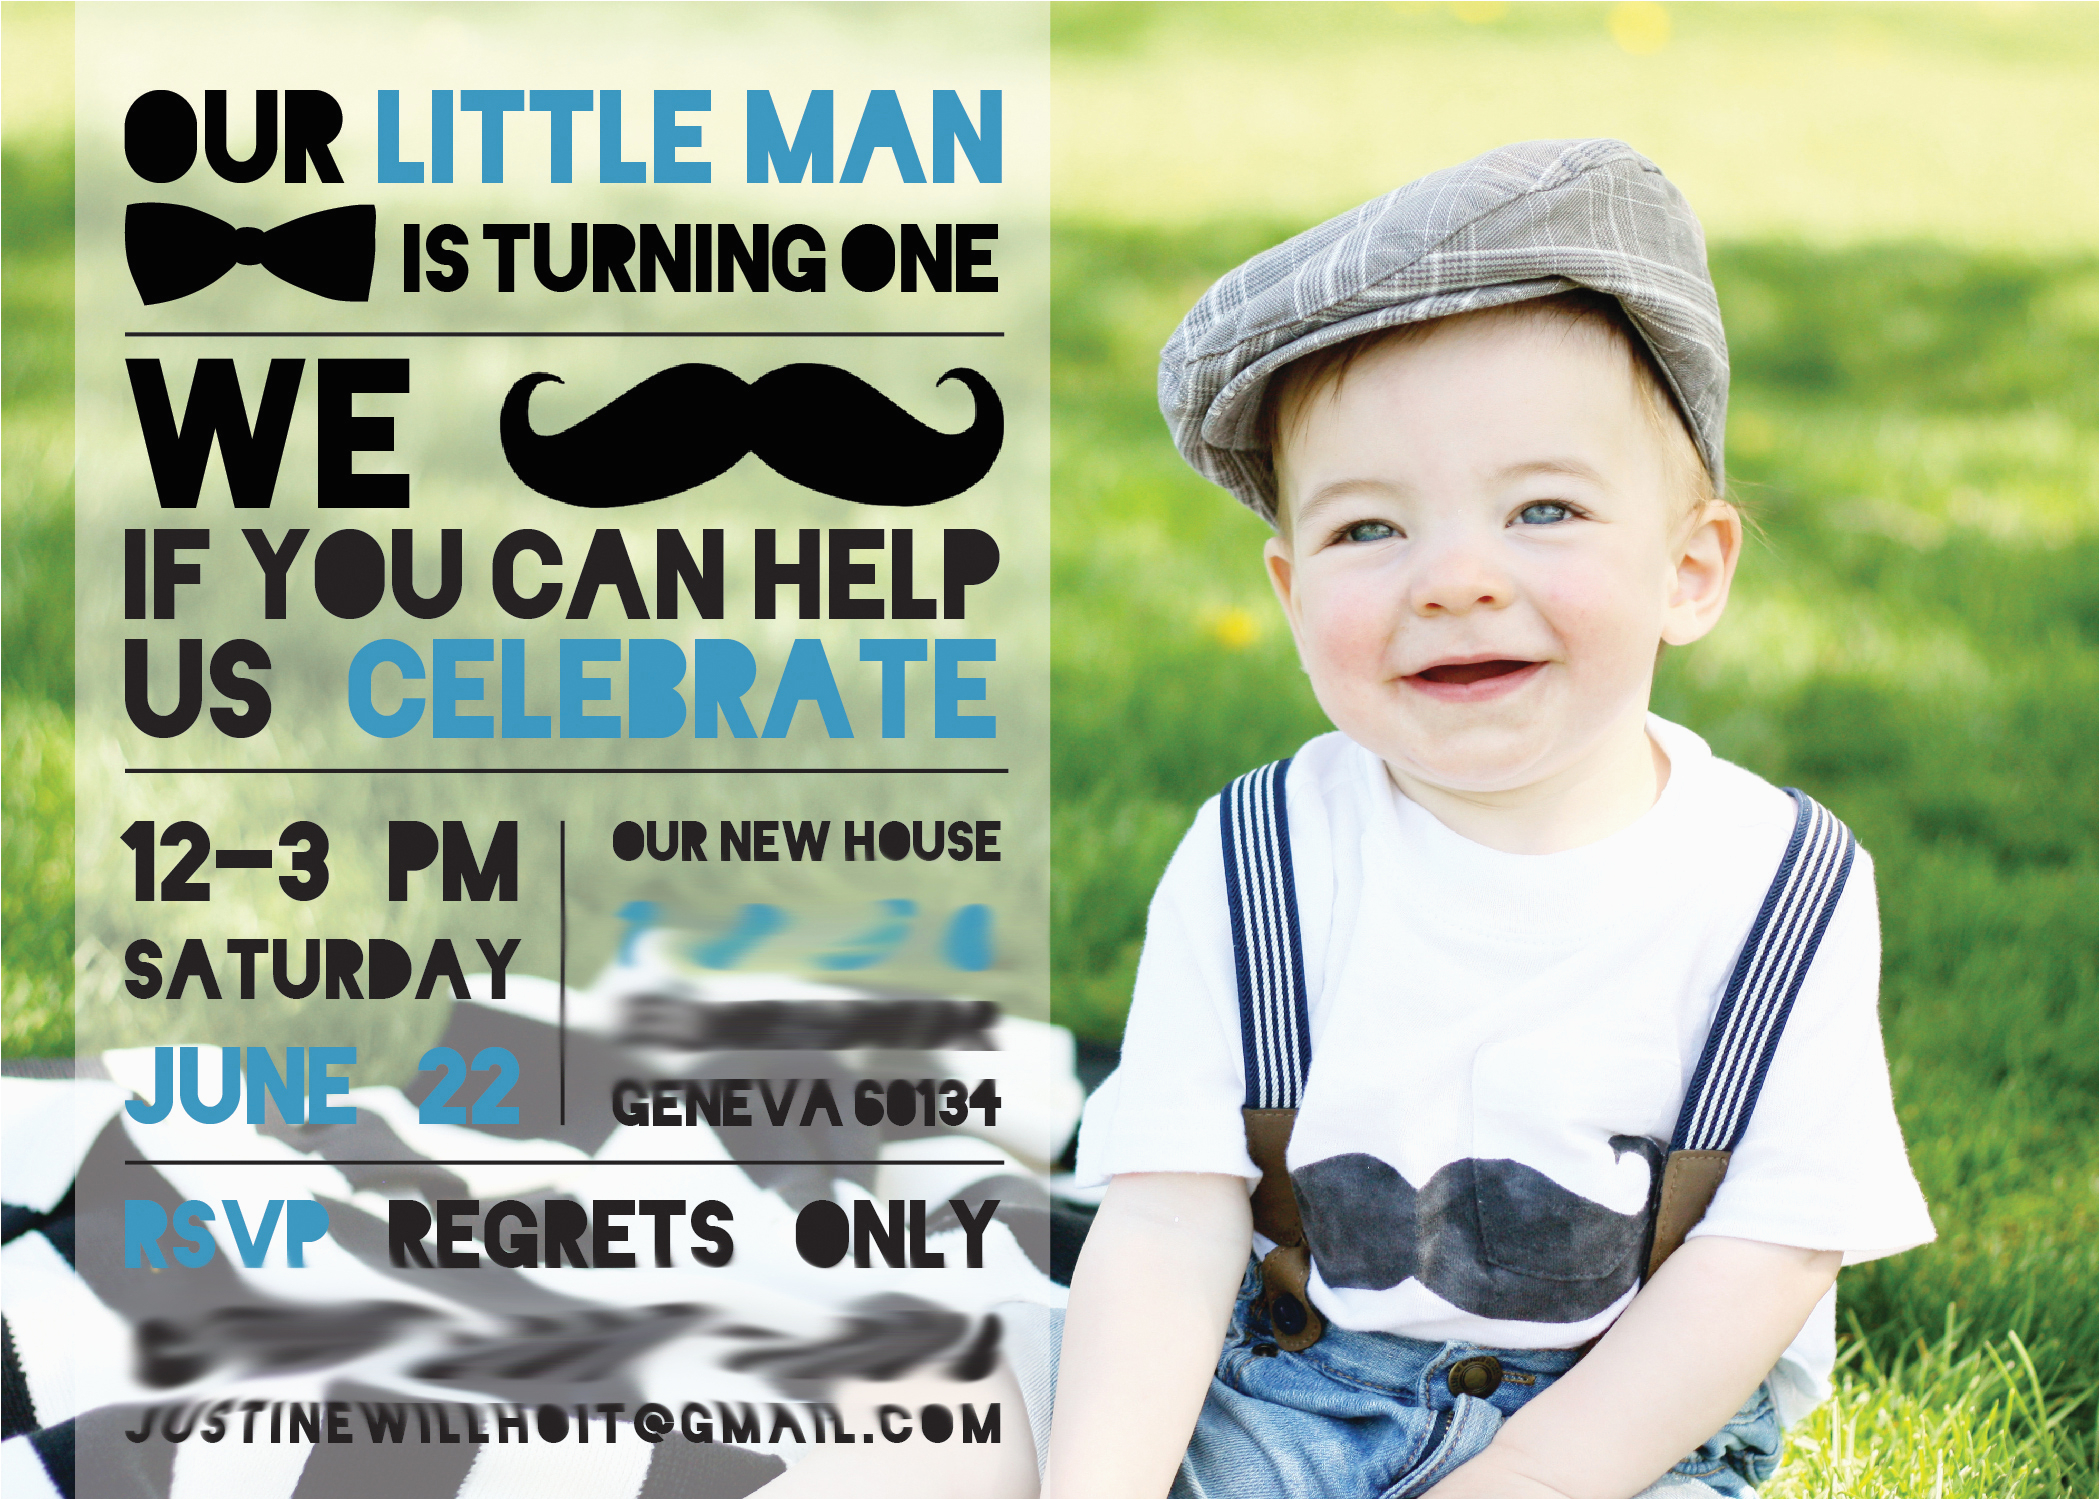 henrys little man first birthday party